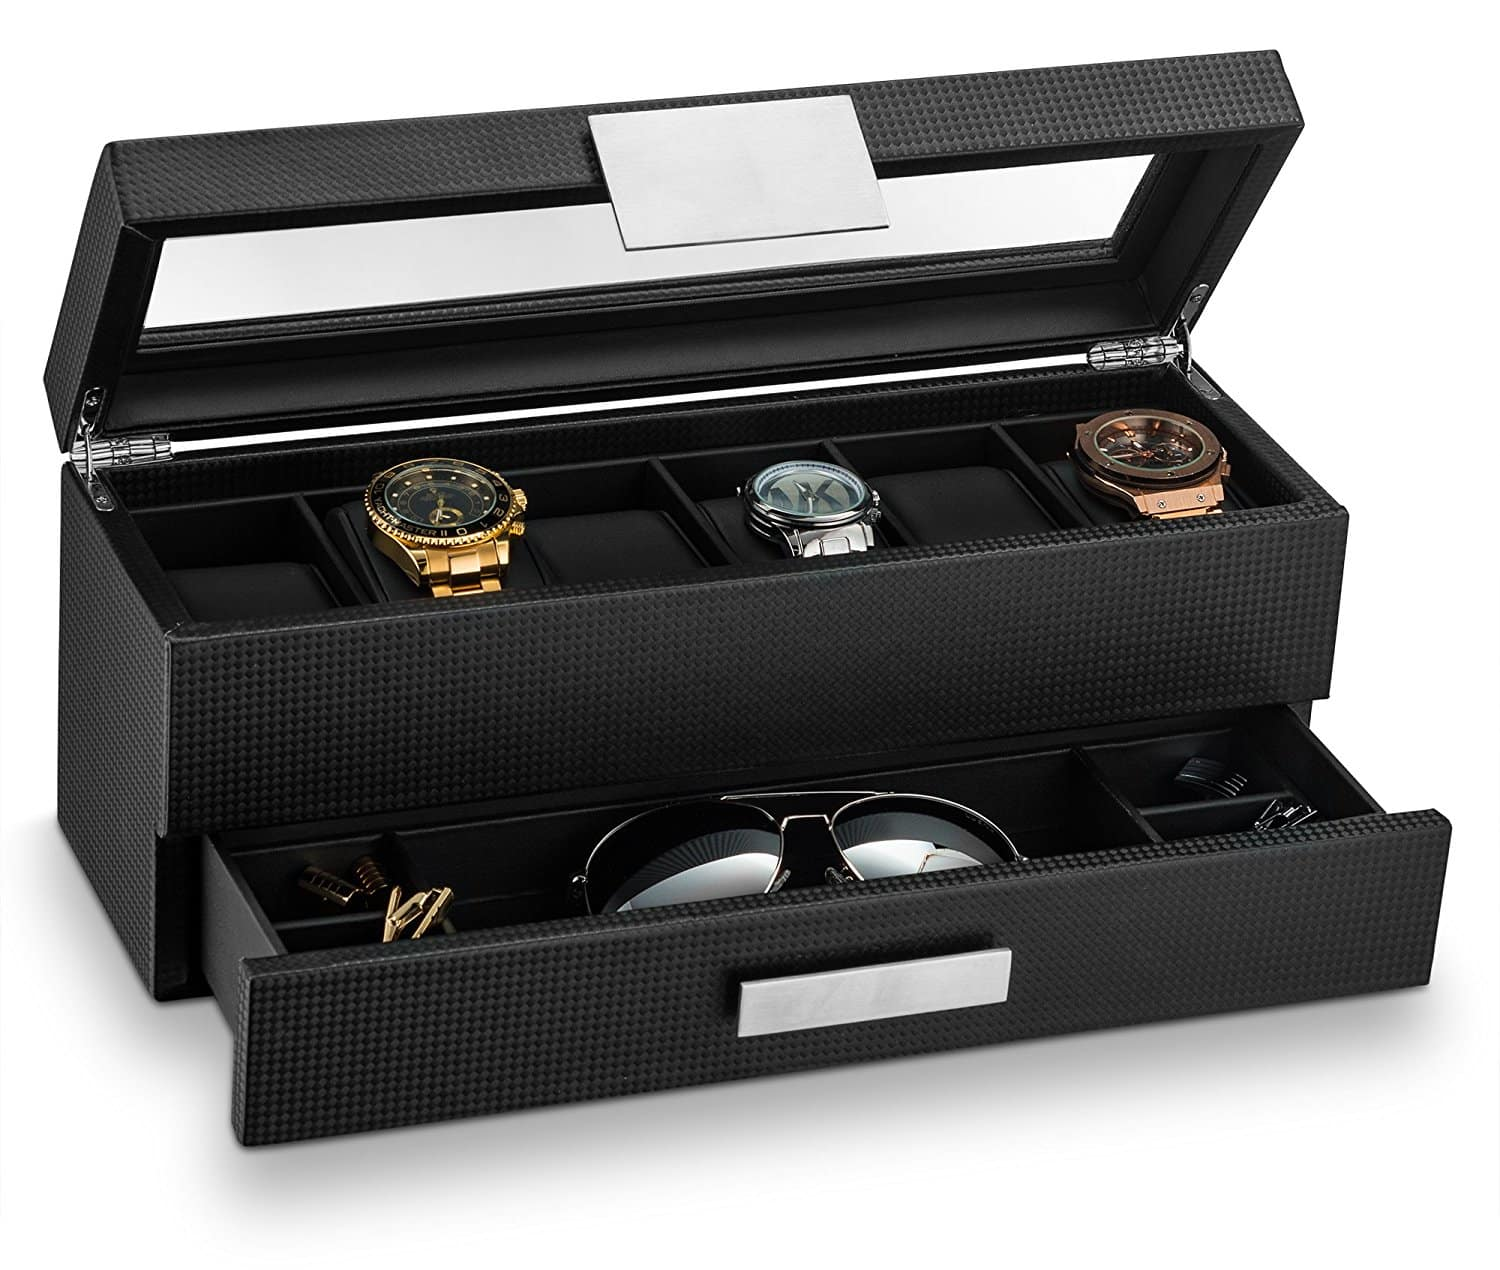 Glenor Co Watch Box with Valet Drawer for Men - 6 Slot Luxury Watch Case Display